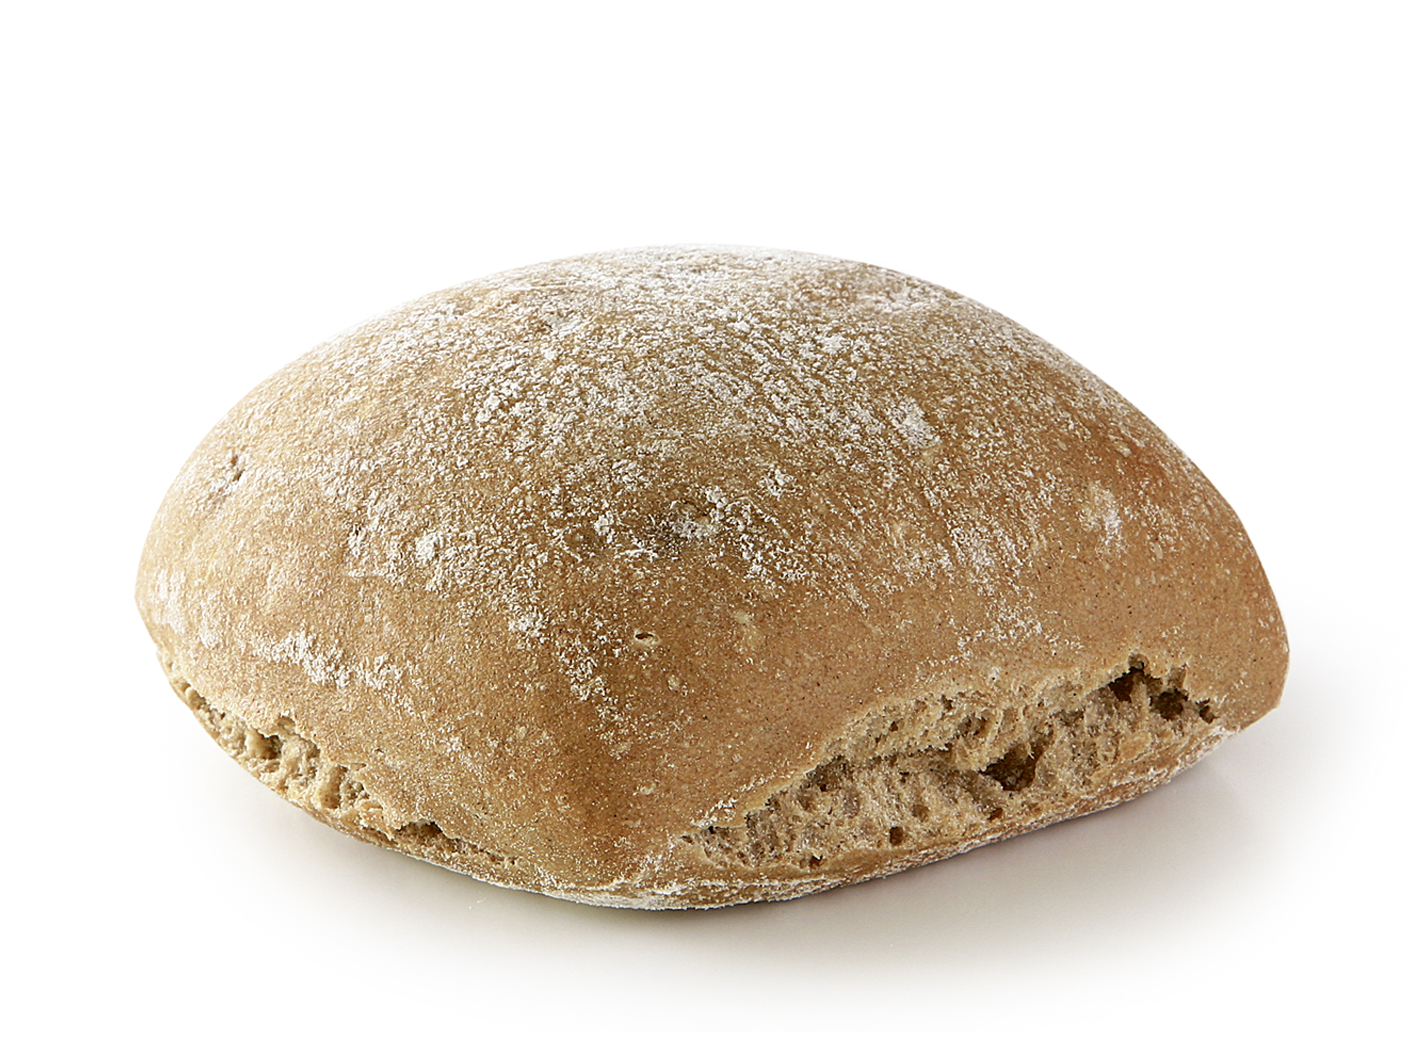 Wheat and Rye - Rye roll with 32% rye flour